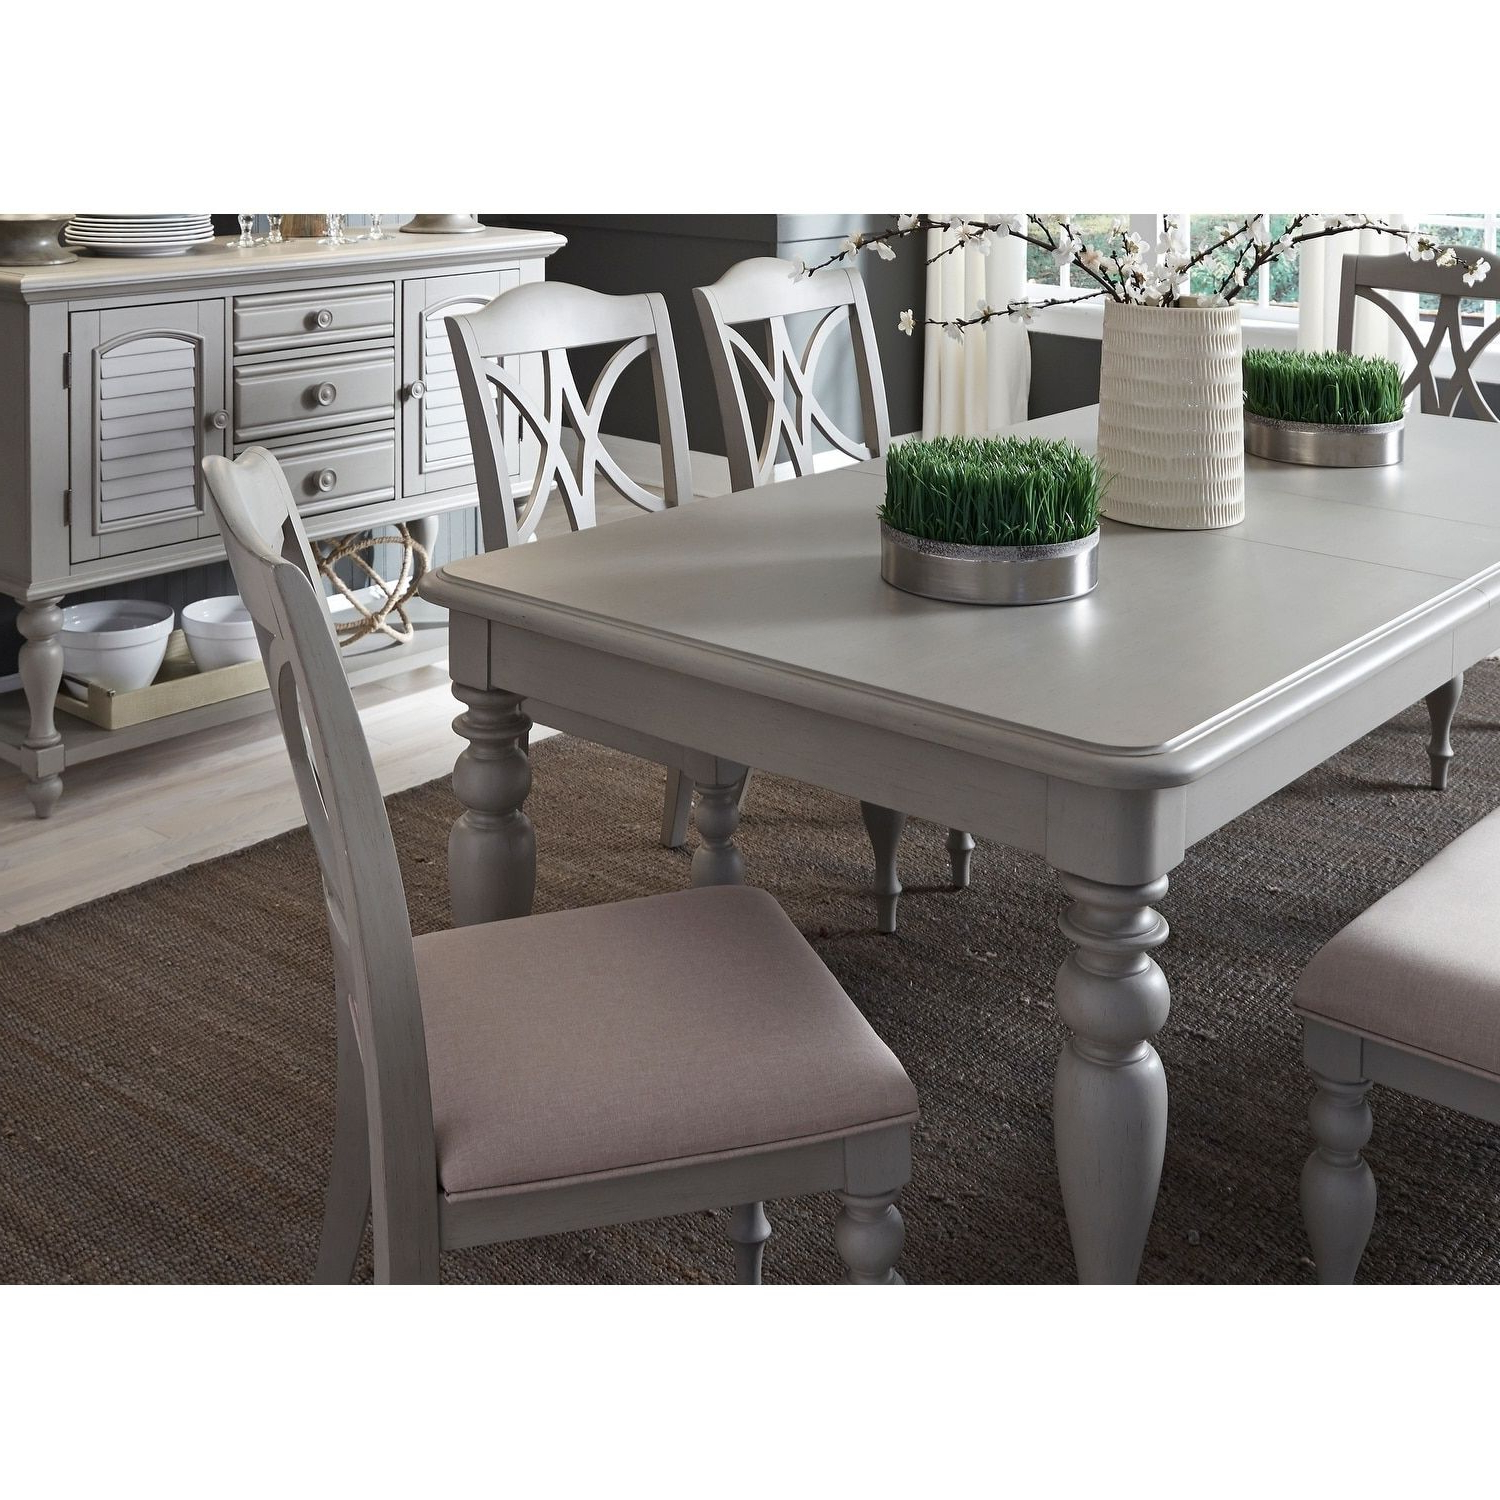 Best And Newest Liberty Summer House 40X78 Dove Gray Rectangular Dinette Table Intended For Lamotte 5 Piece Dining Sets (View 4 of 25)